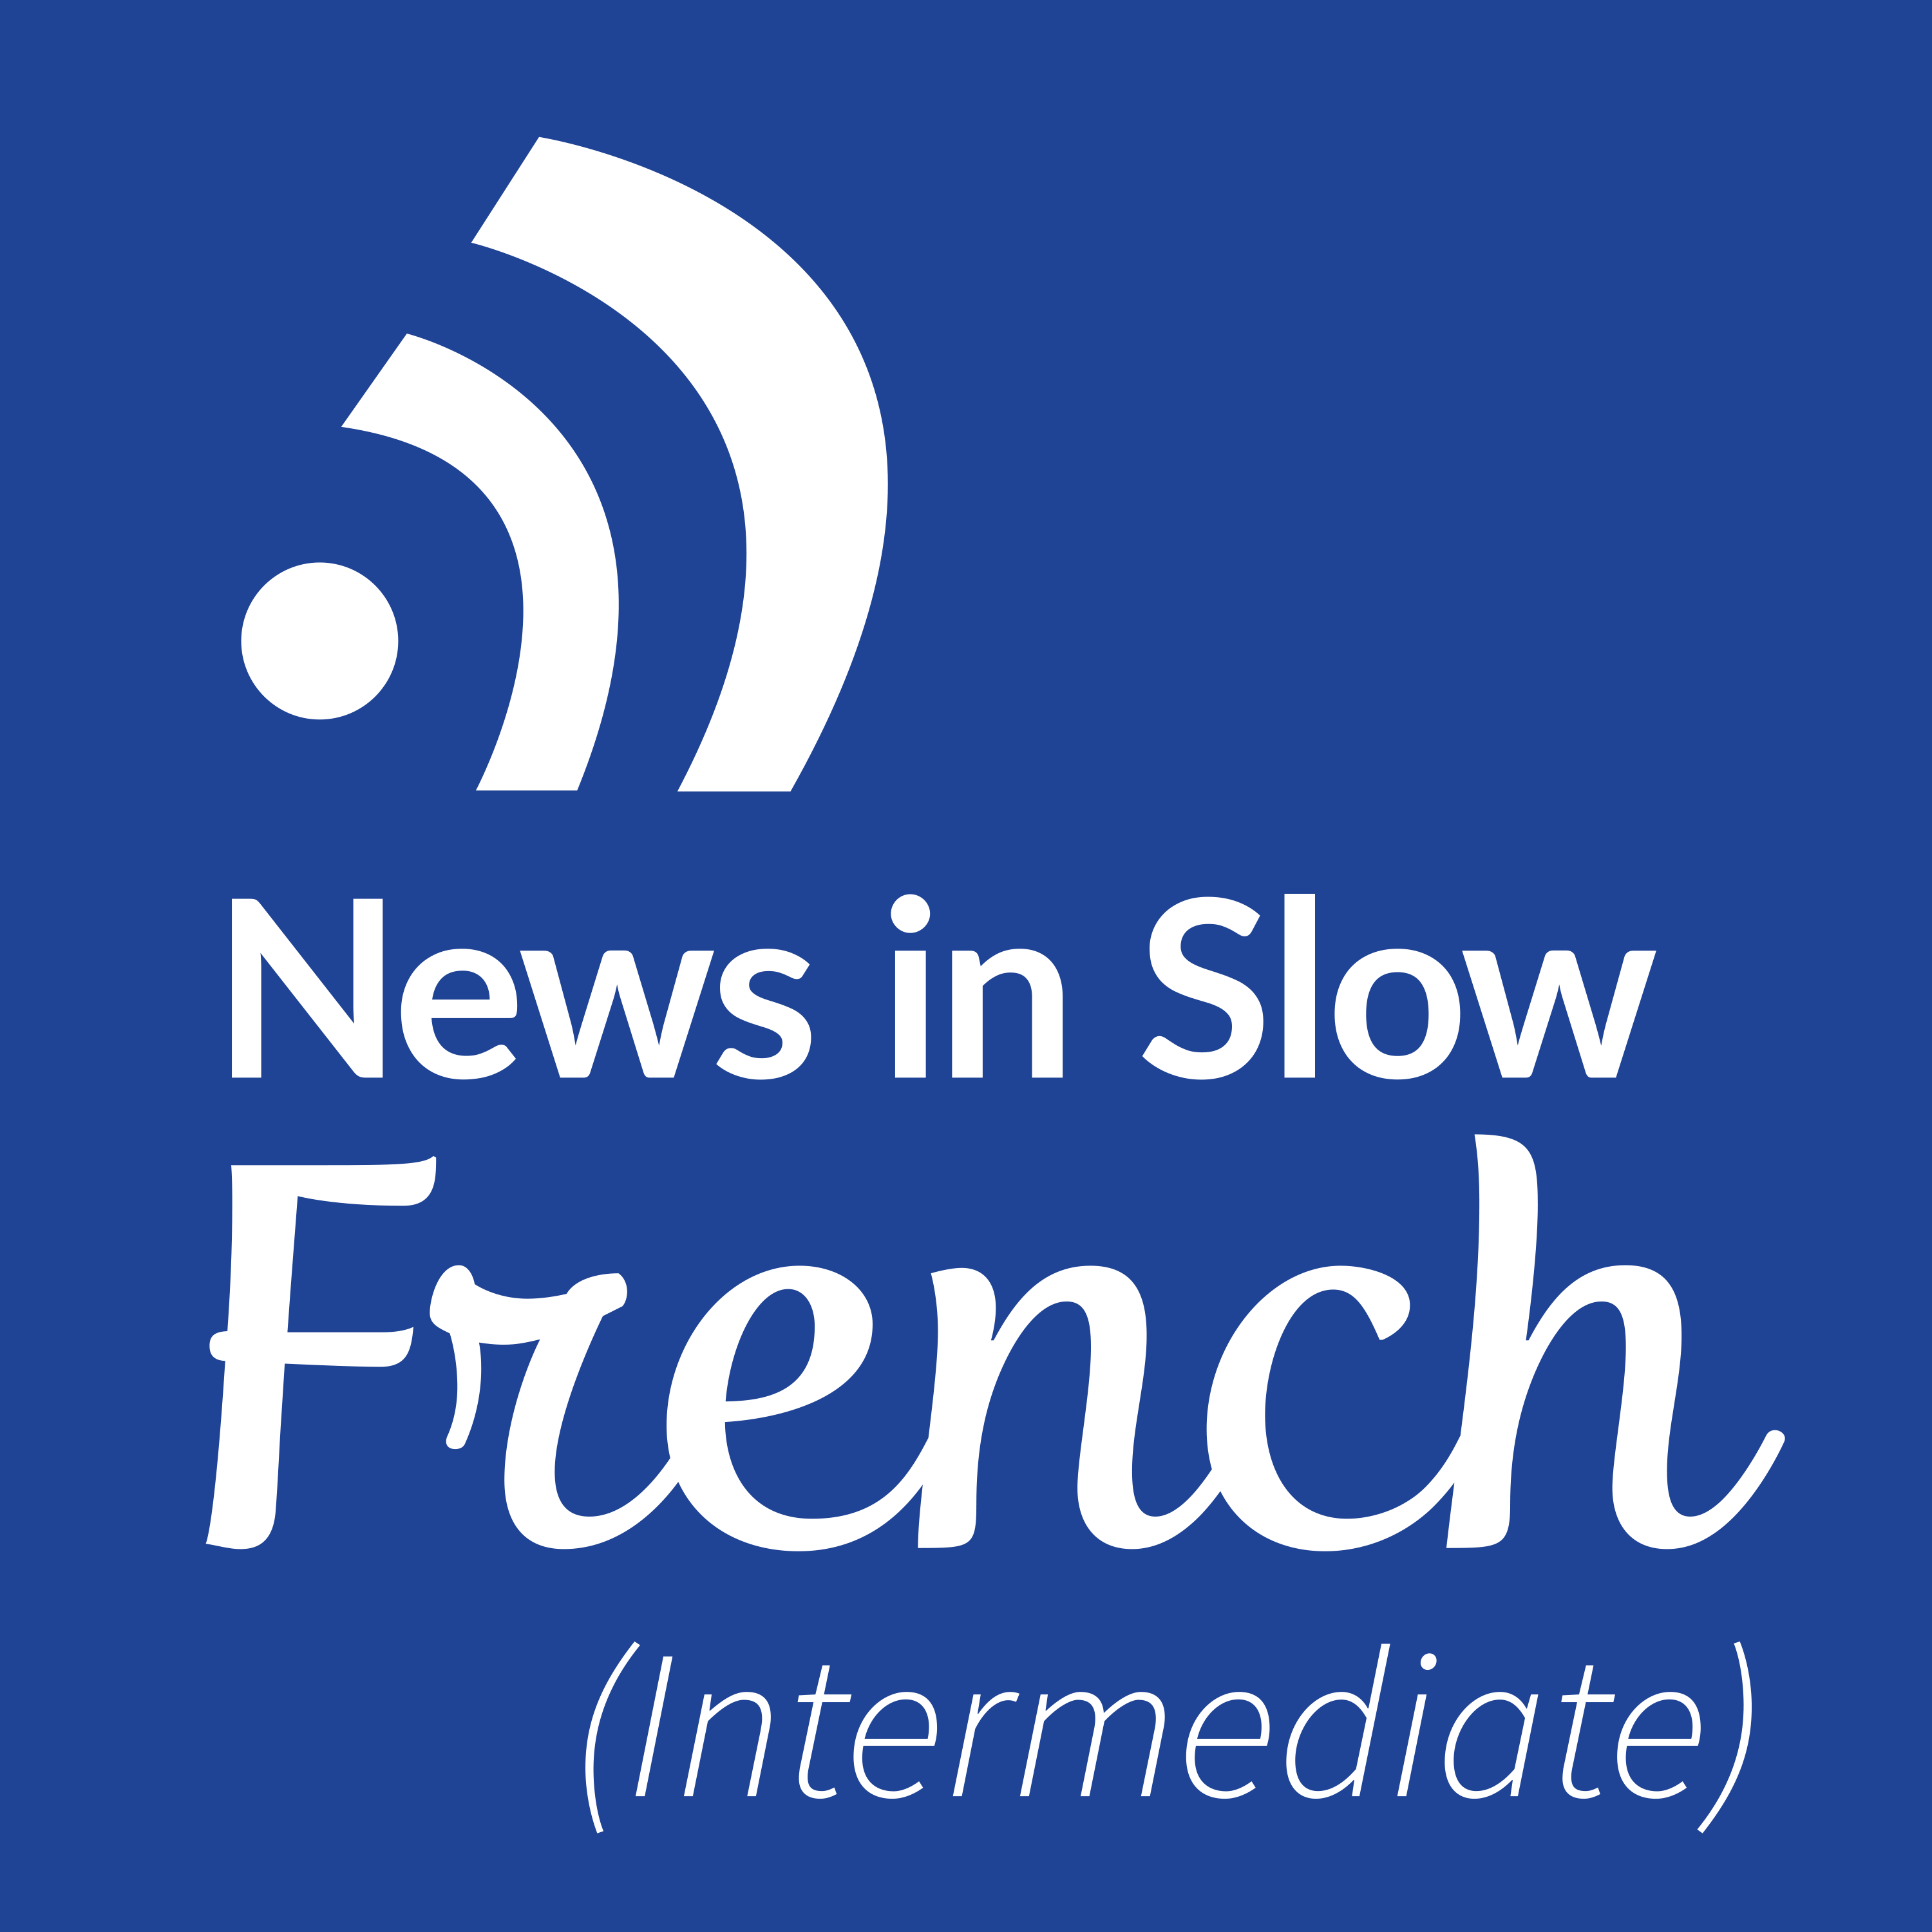 News in Slow French #262 - Learn French through current events